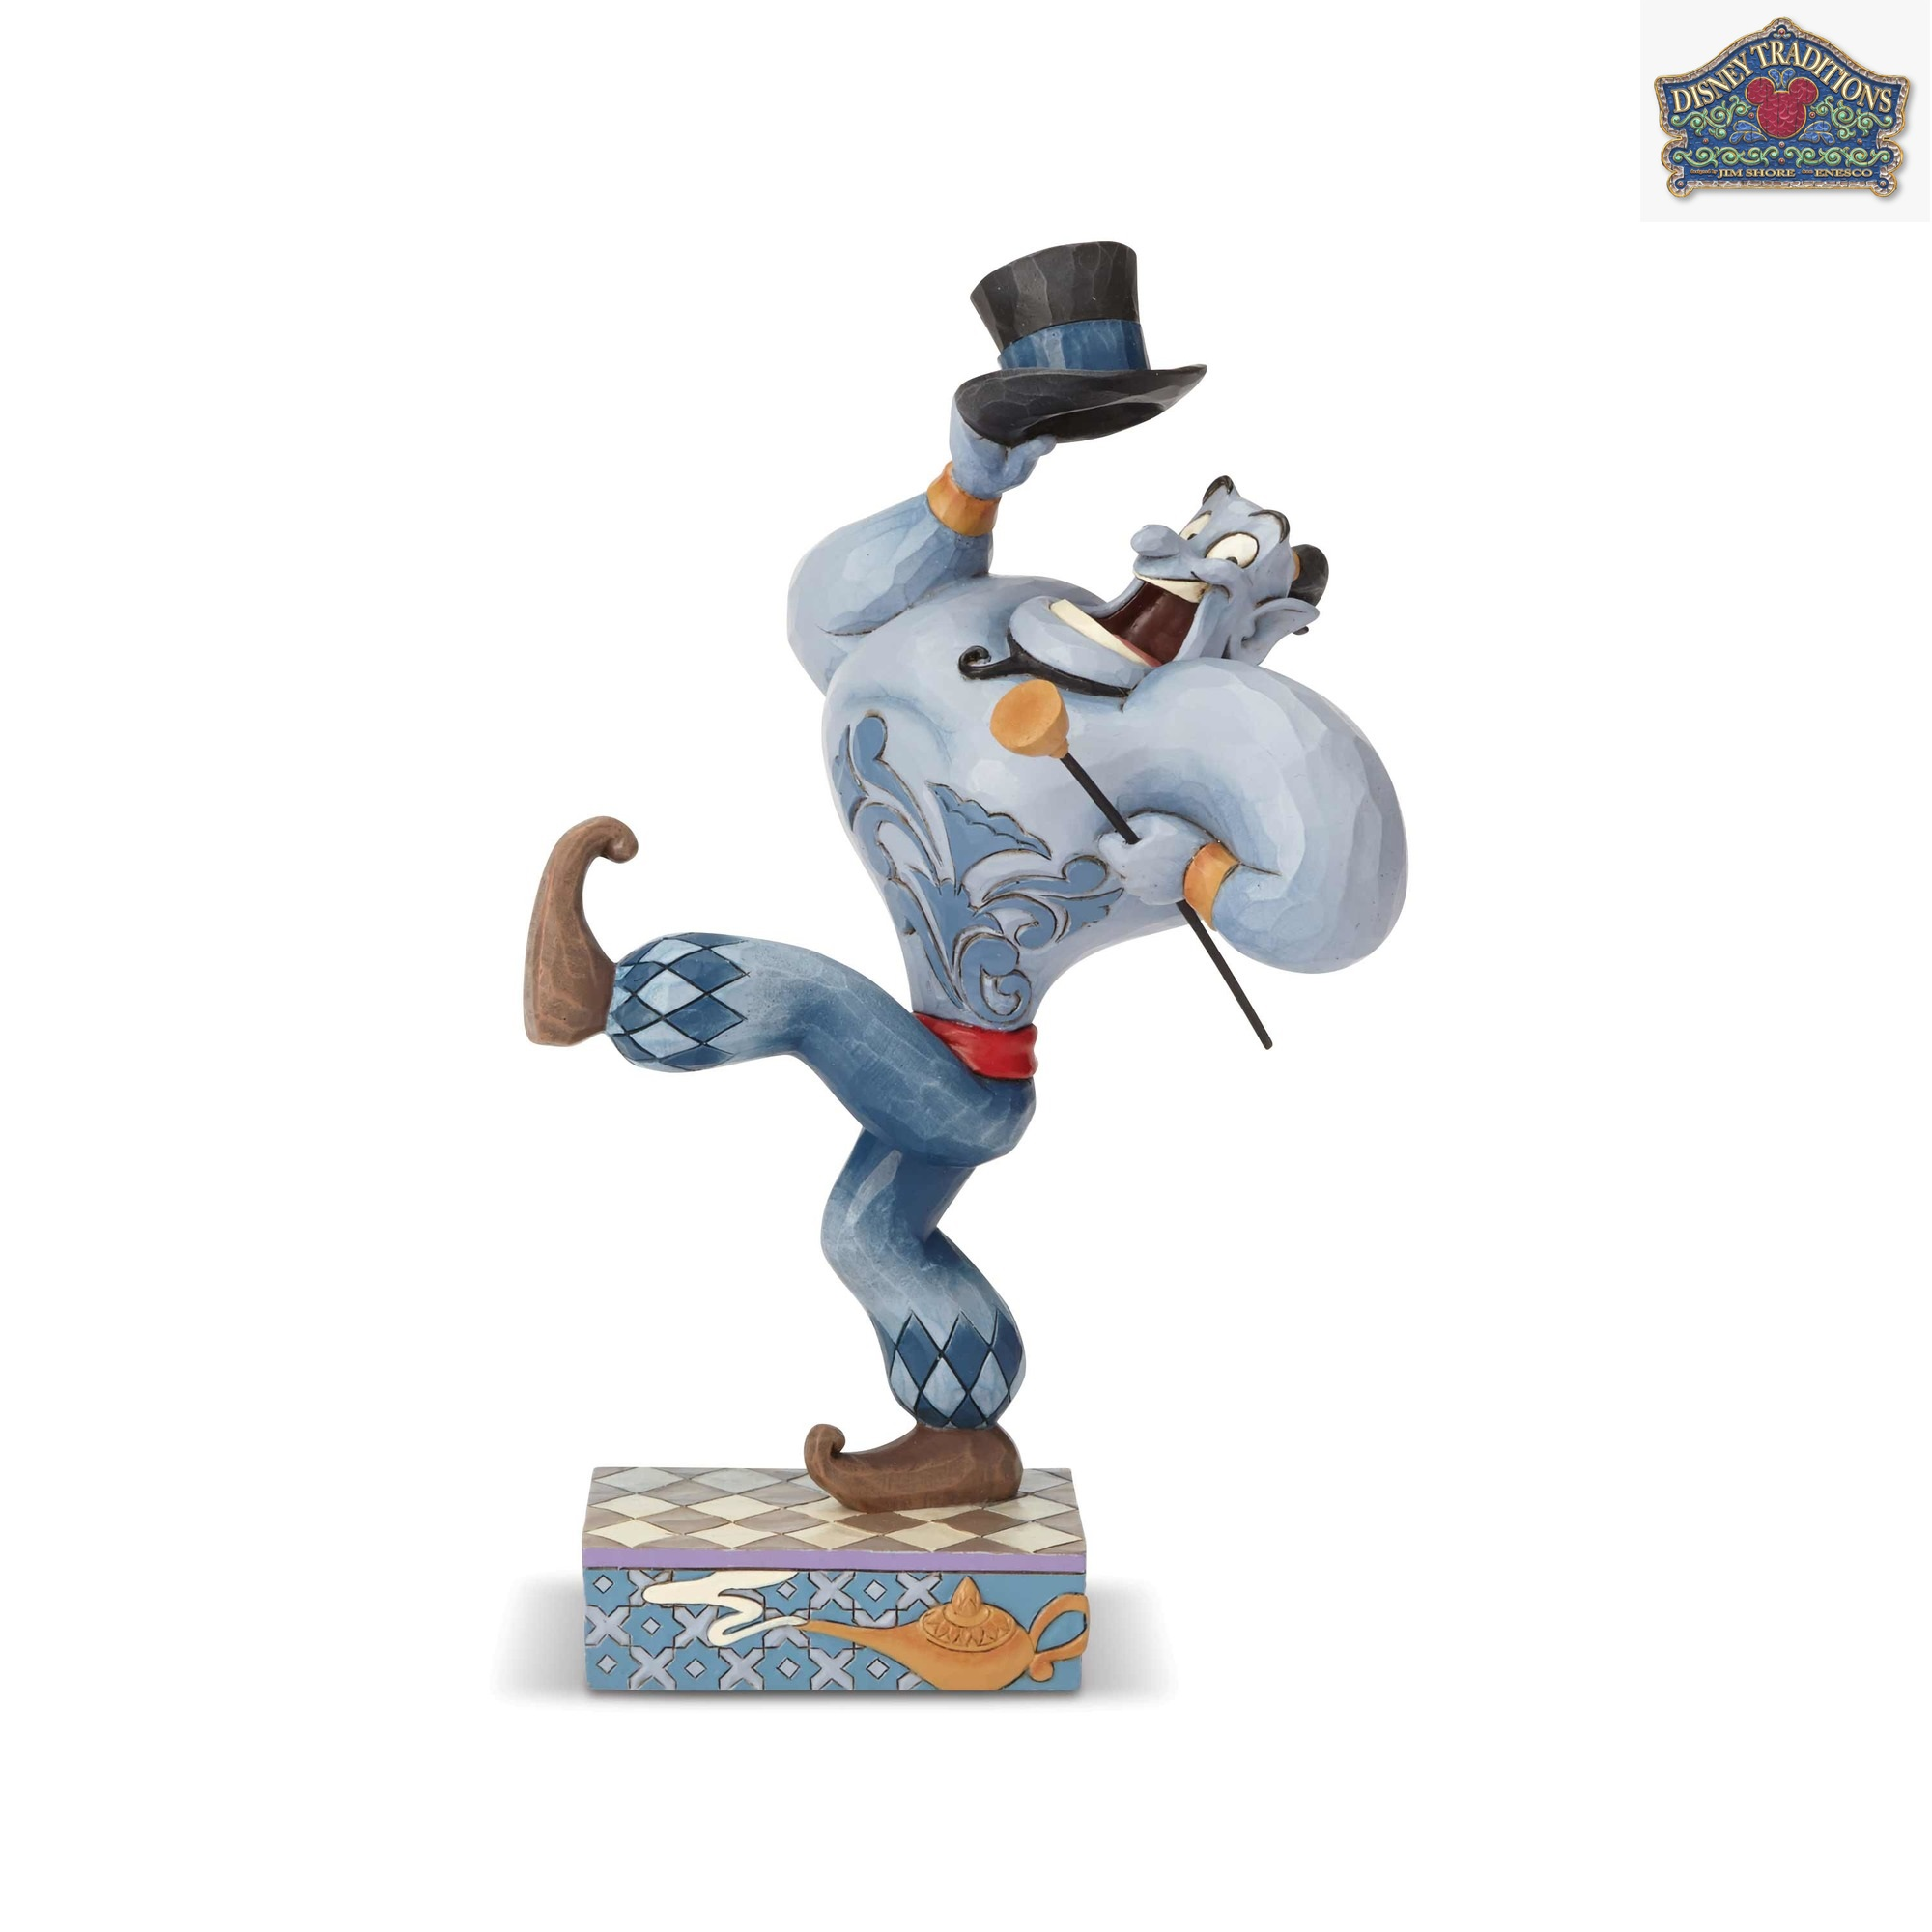 Disney Traditions Aladdin Genie Figurine